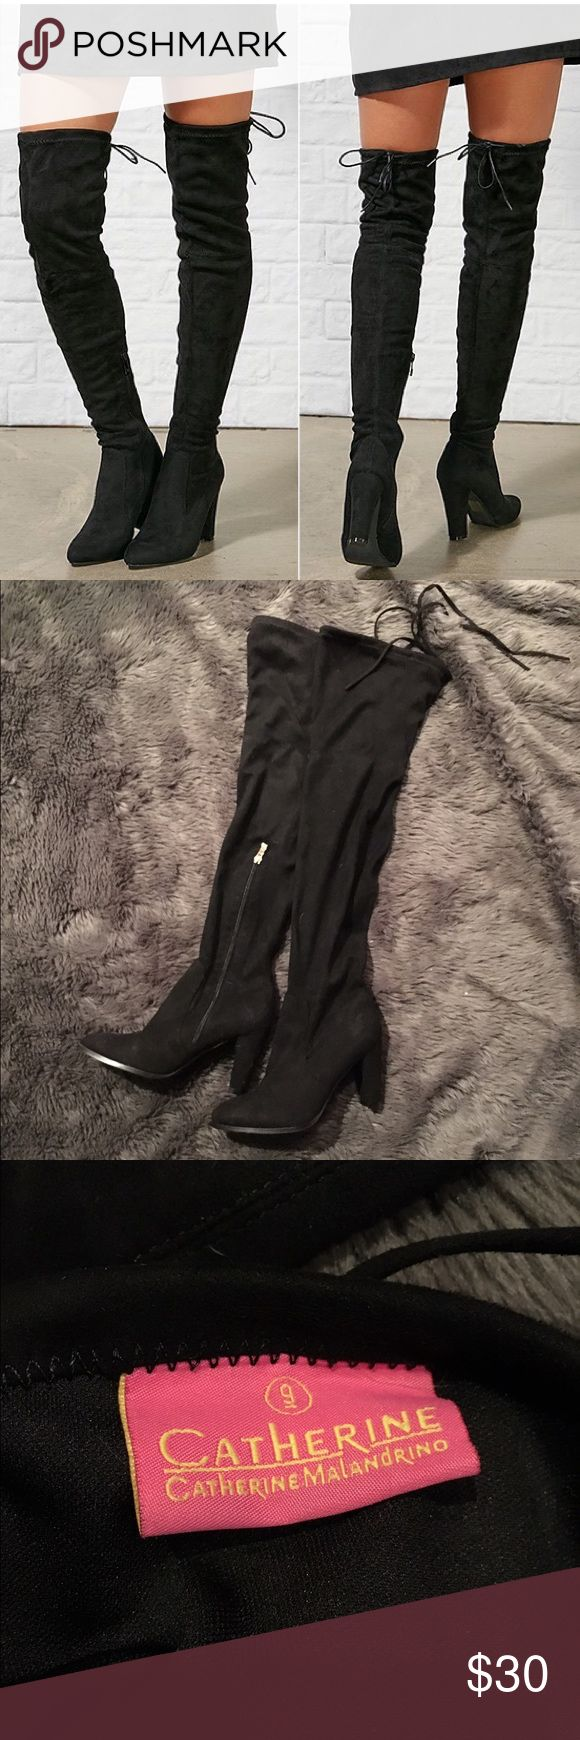 Catherine Malandrino Thigh High Boots Super cute catherine malandrino thigh high boots from Nordstrom! Worn once. Size 9. Perfect for winter chic. Catherine Malandrino Shoes Over the Knee Boots